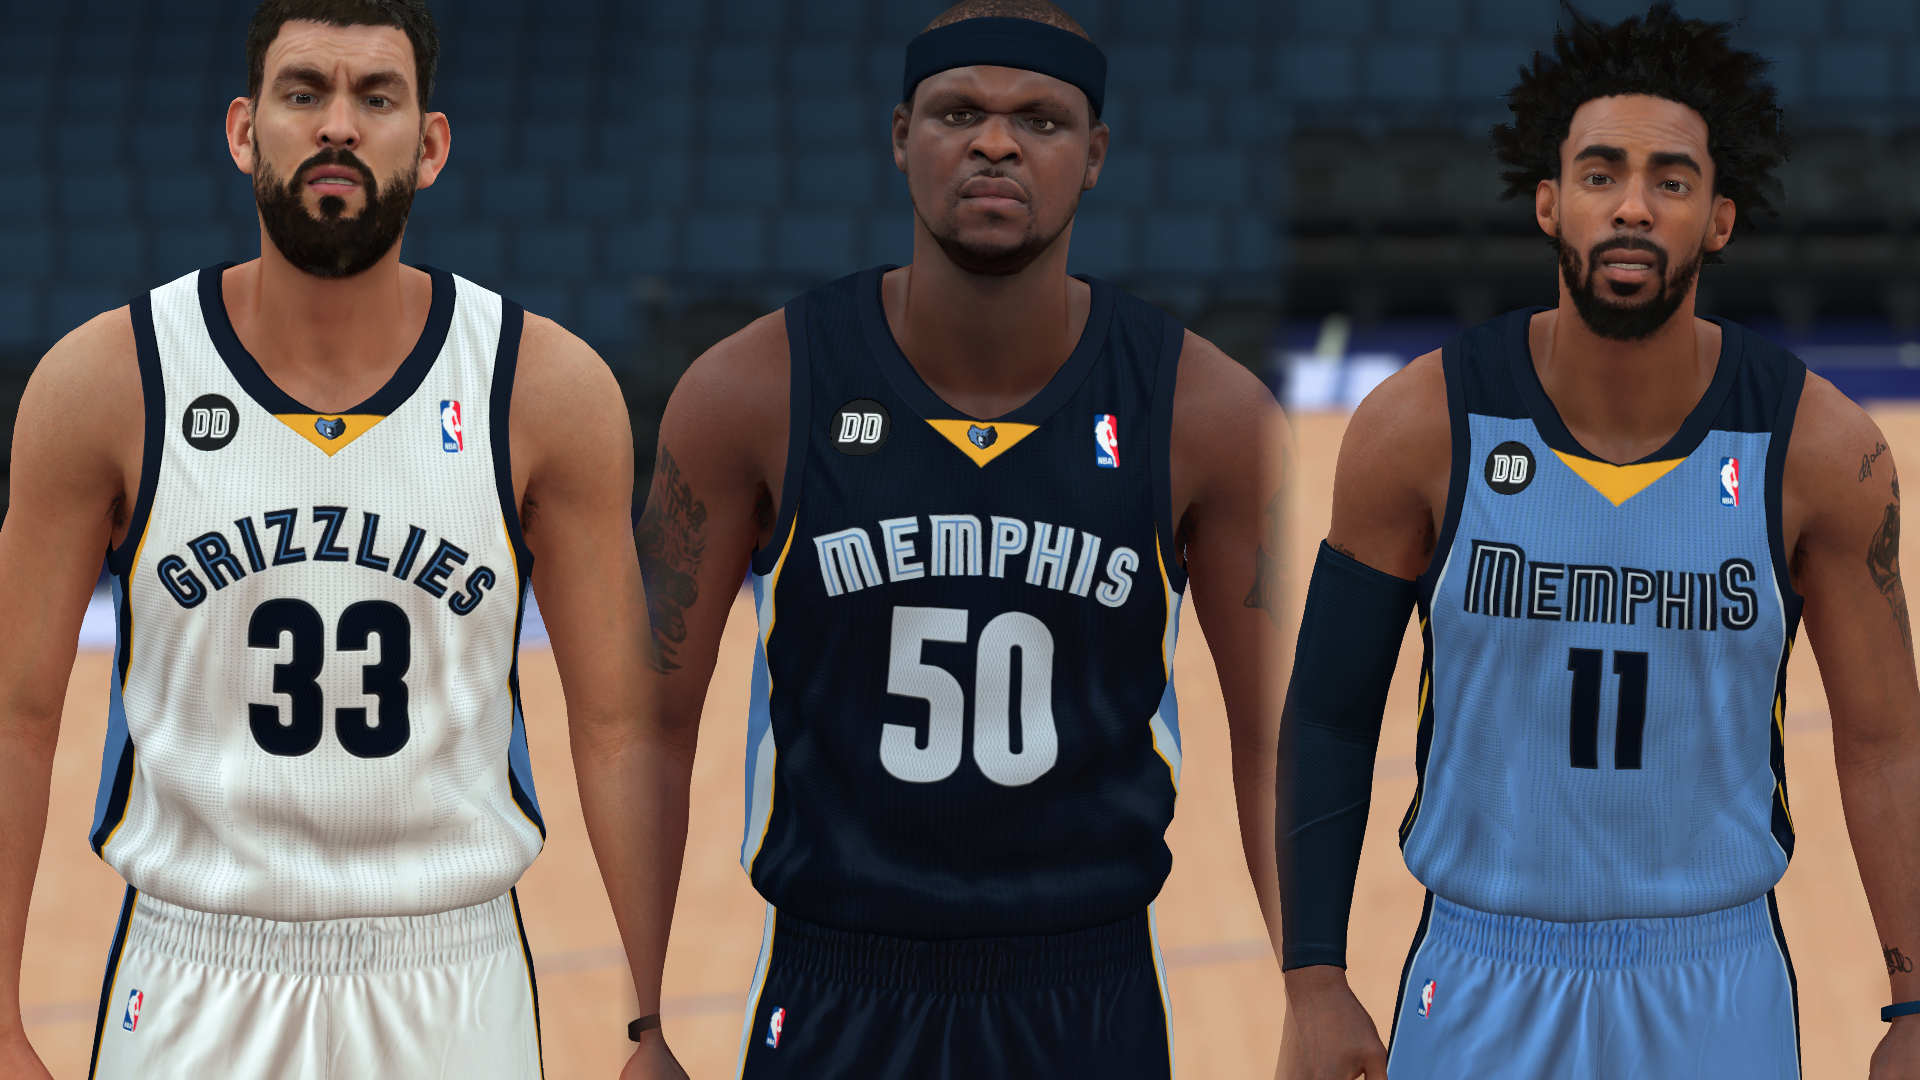 2012-2013 Grizzlies Jerseys - PeacemanNOT